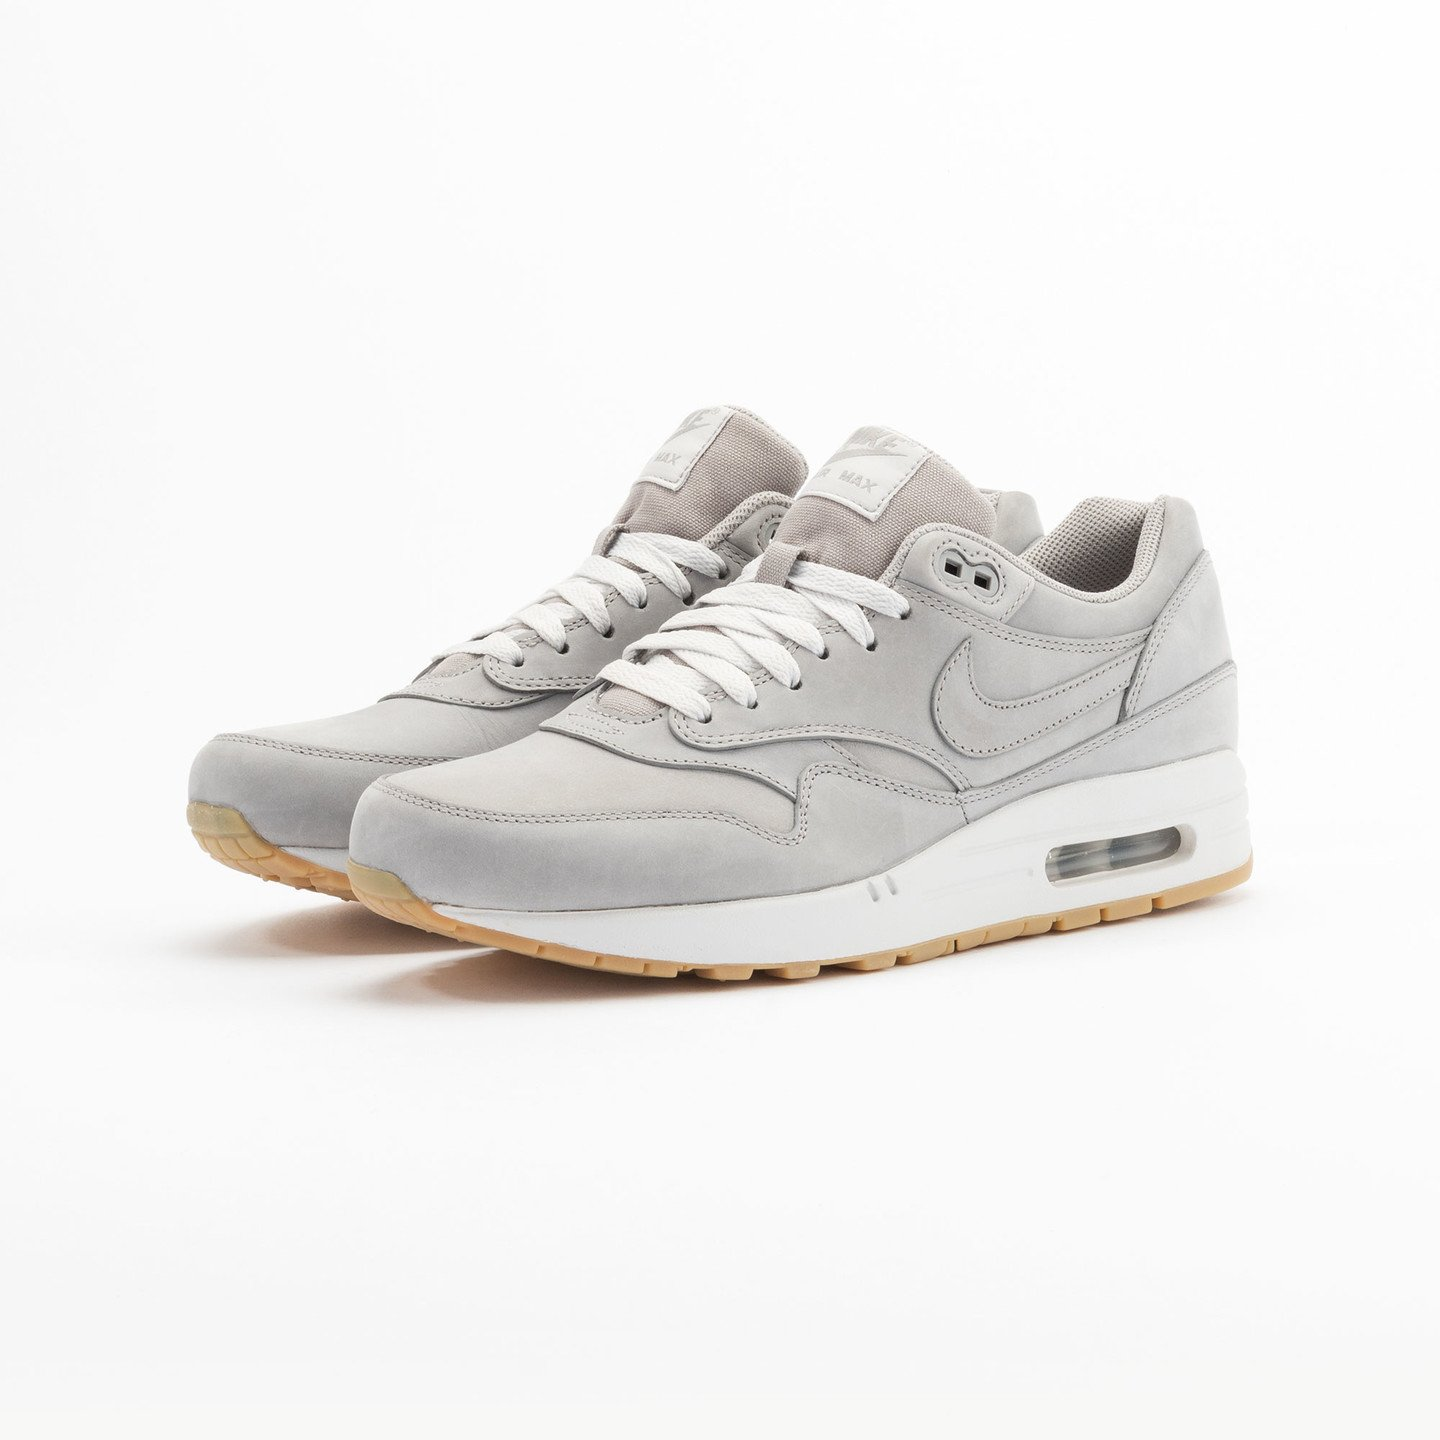 Nike Air Max Leather 1 Premium Medium Grey 705282-005-47